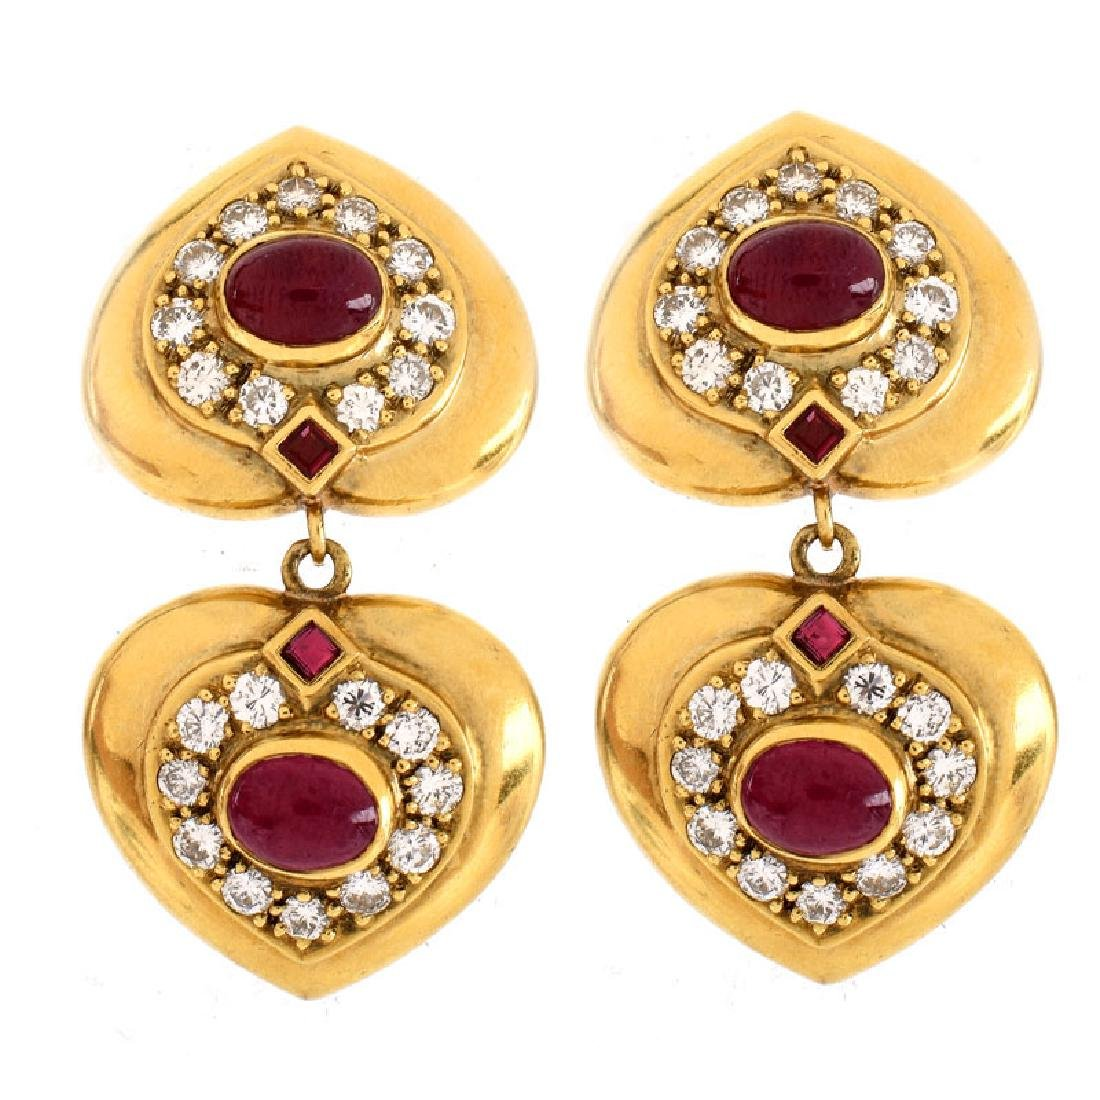 Vintage Cabochon Ruby, Pave Set Round Brilliant Cut